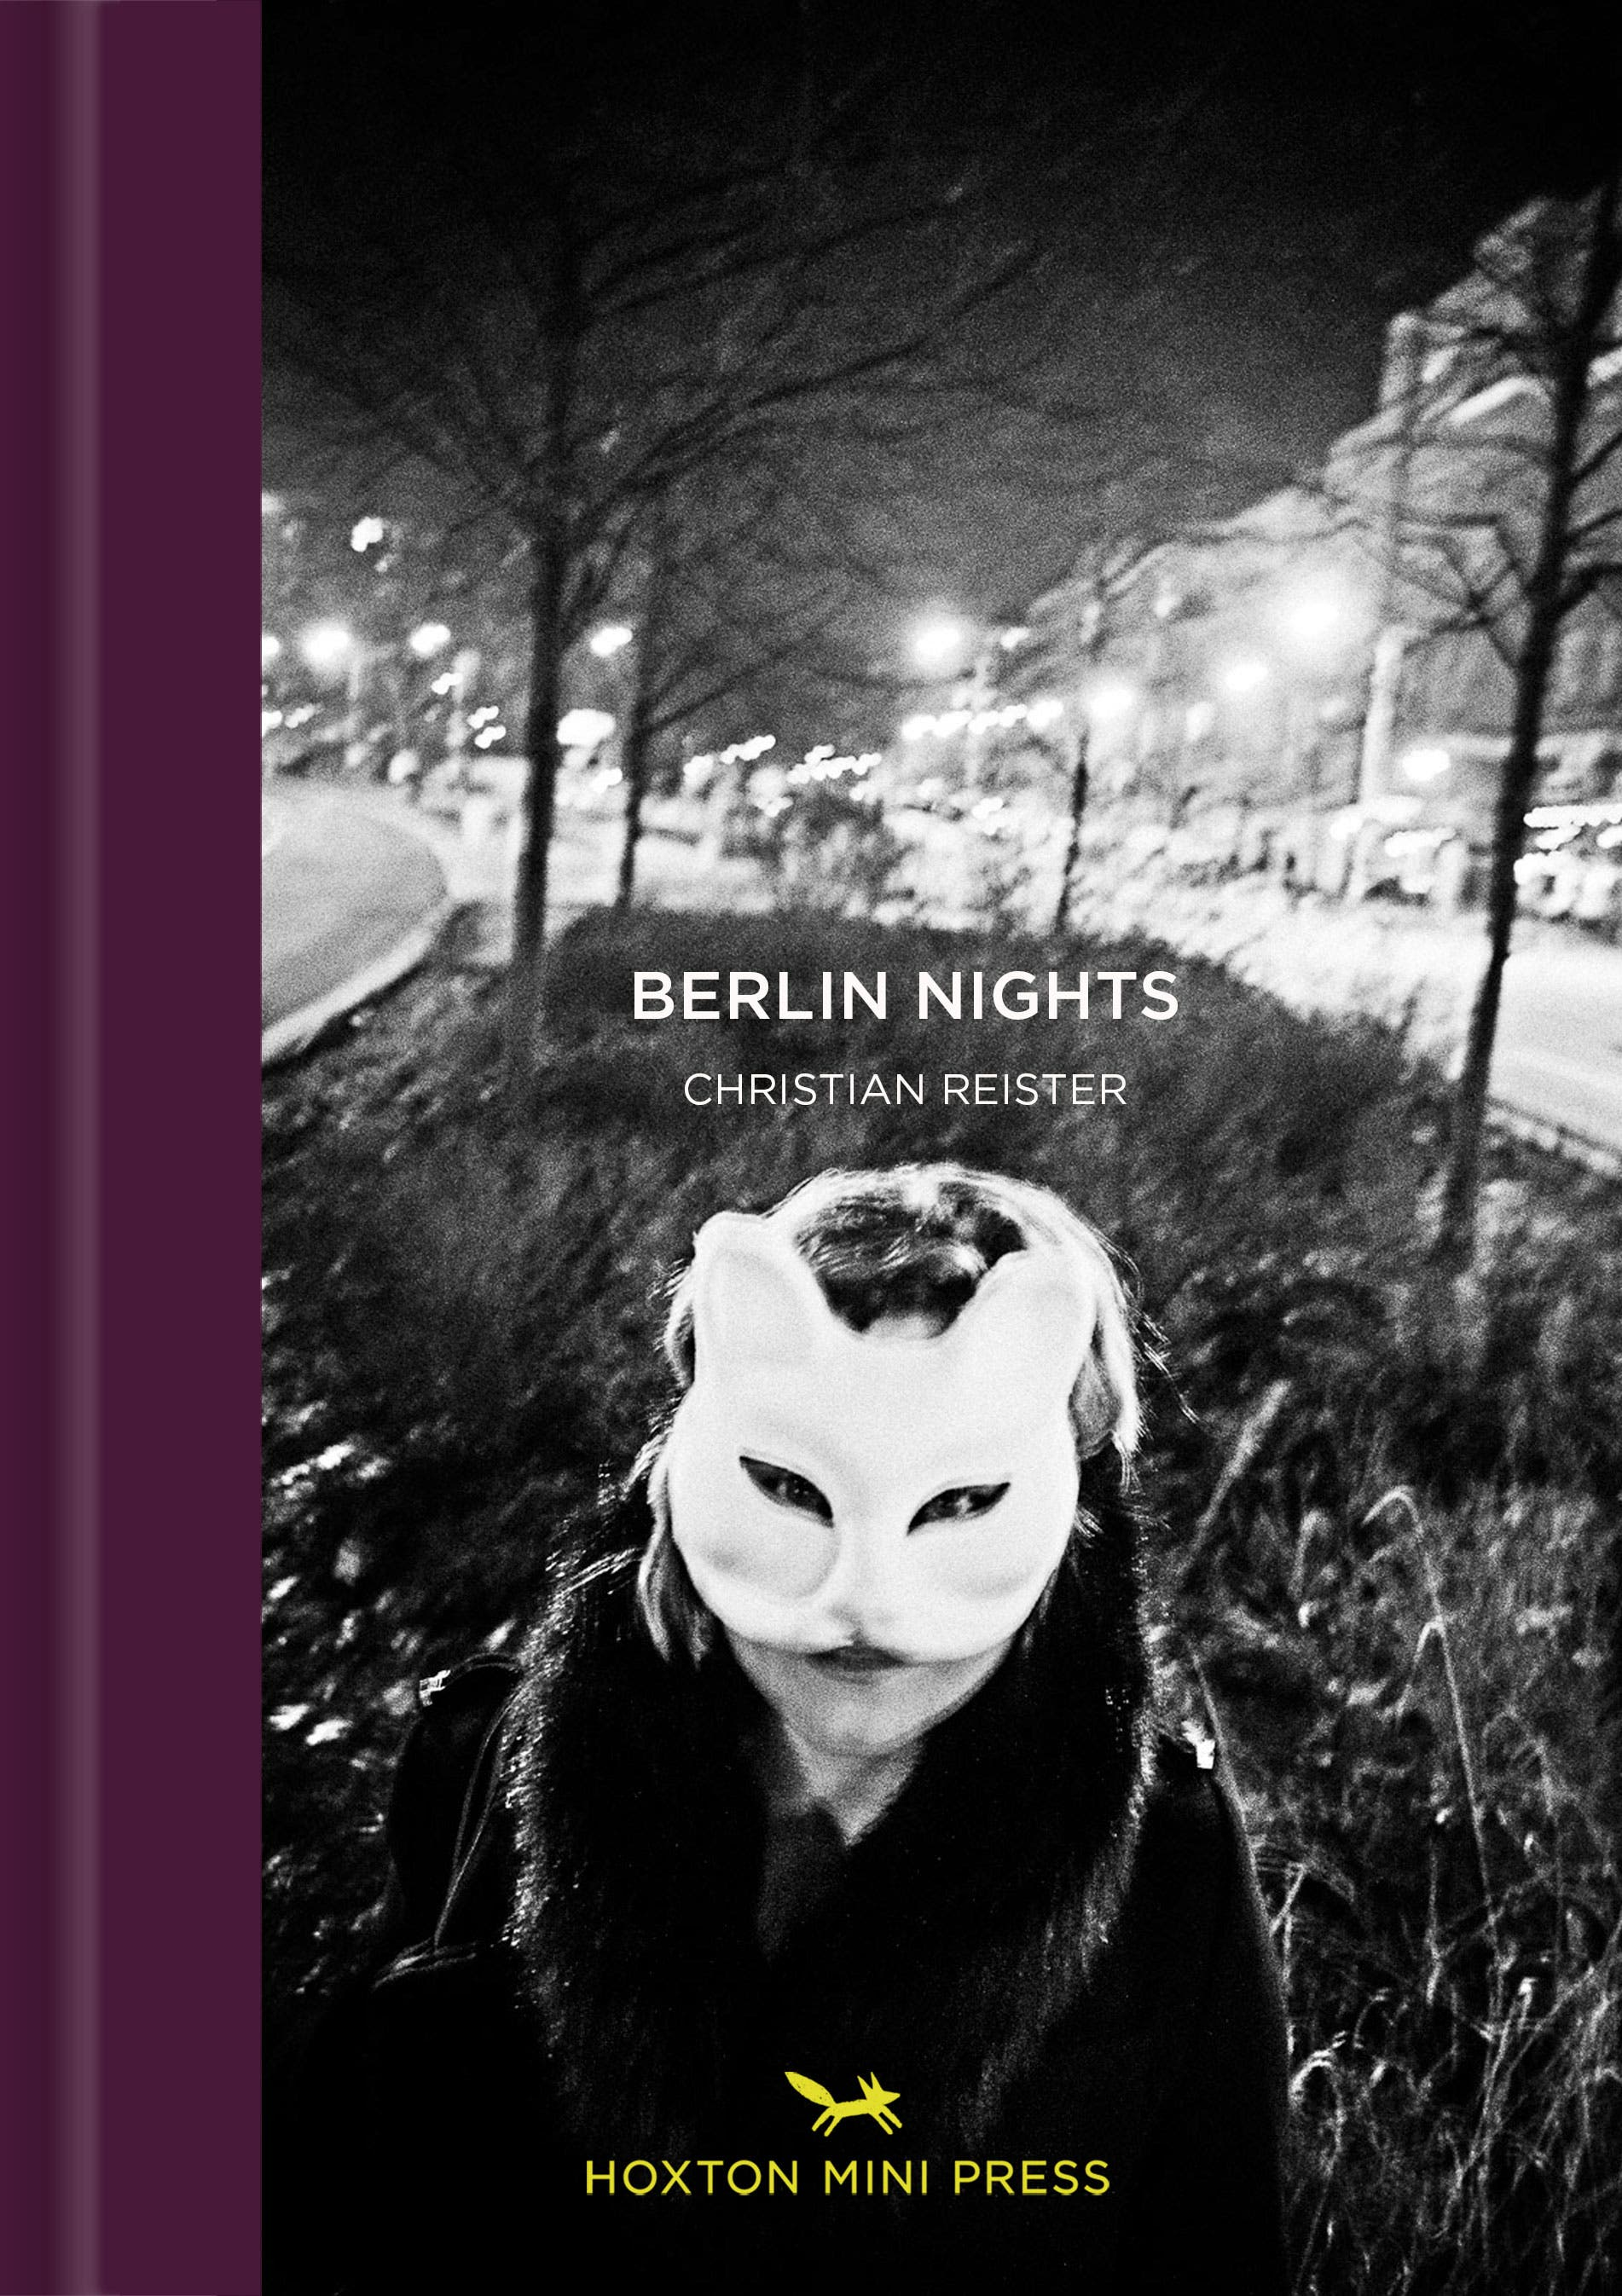 Christian Reister: Berlin's Frenetic Nightlife in Gritty Black and White